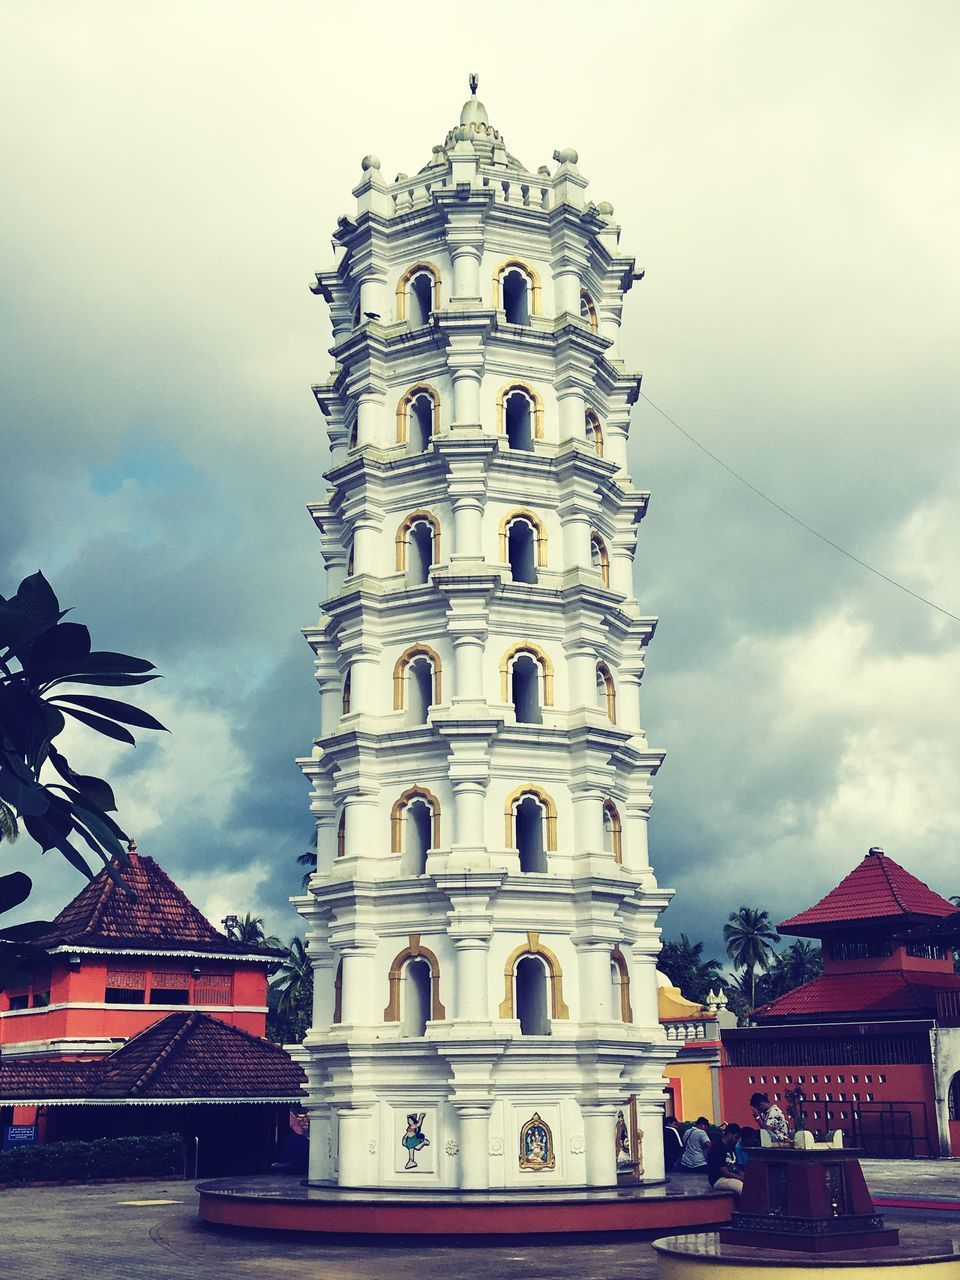 building exterior, architecture, built structure, sky, cloud - sky, building, low angle view, nature, place of worship, belief, religion, tower, travel destinations, no people, city, day, spirituality, the past, travel, history, outdoors, spire